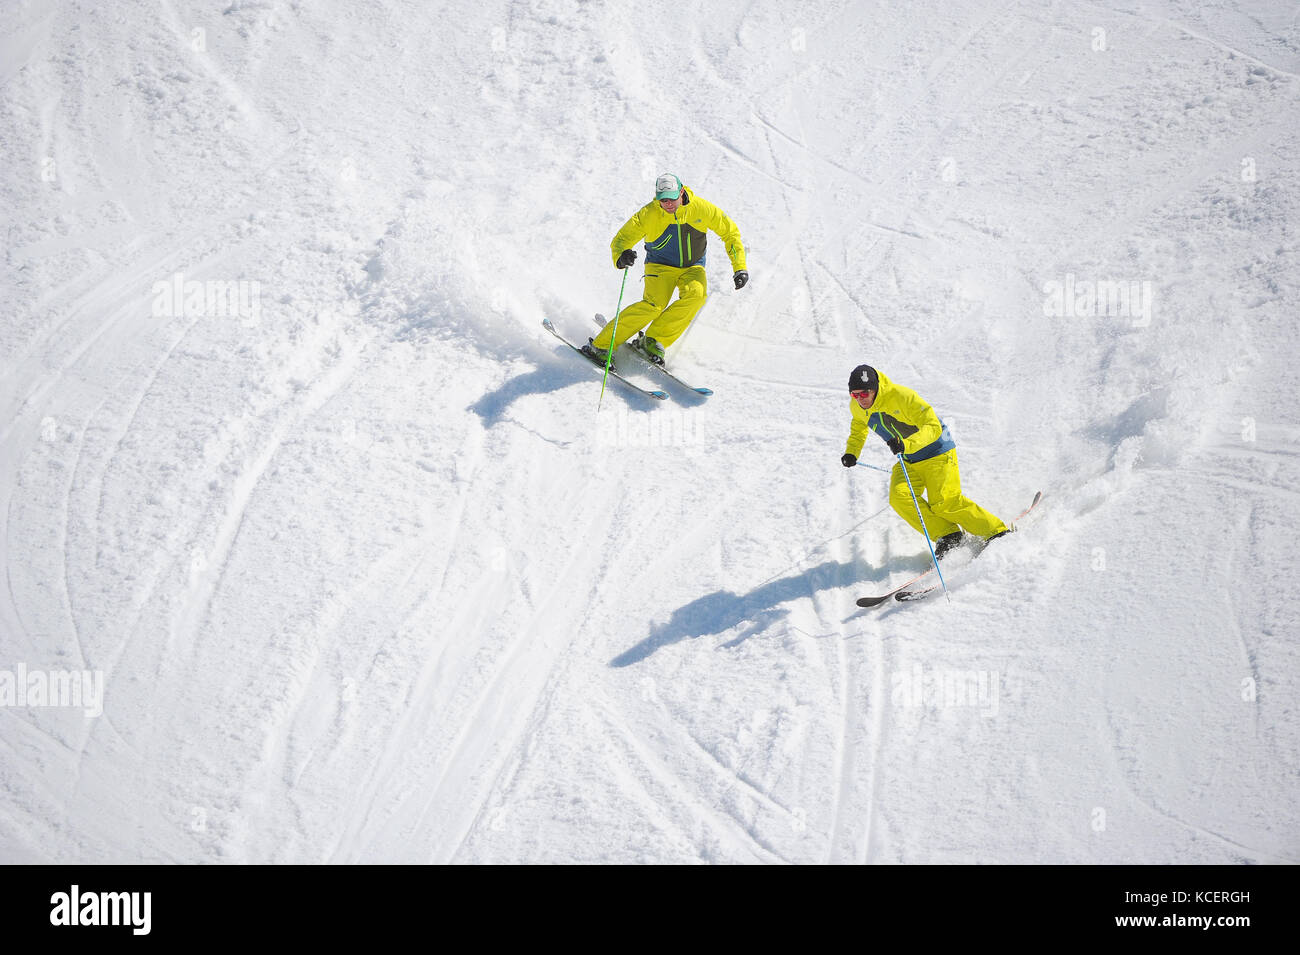 Two skiers carve turns photographed from above. - Stock Image